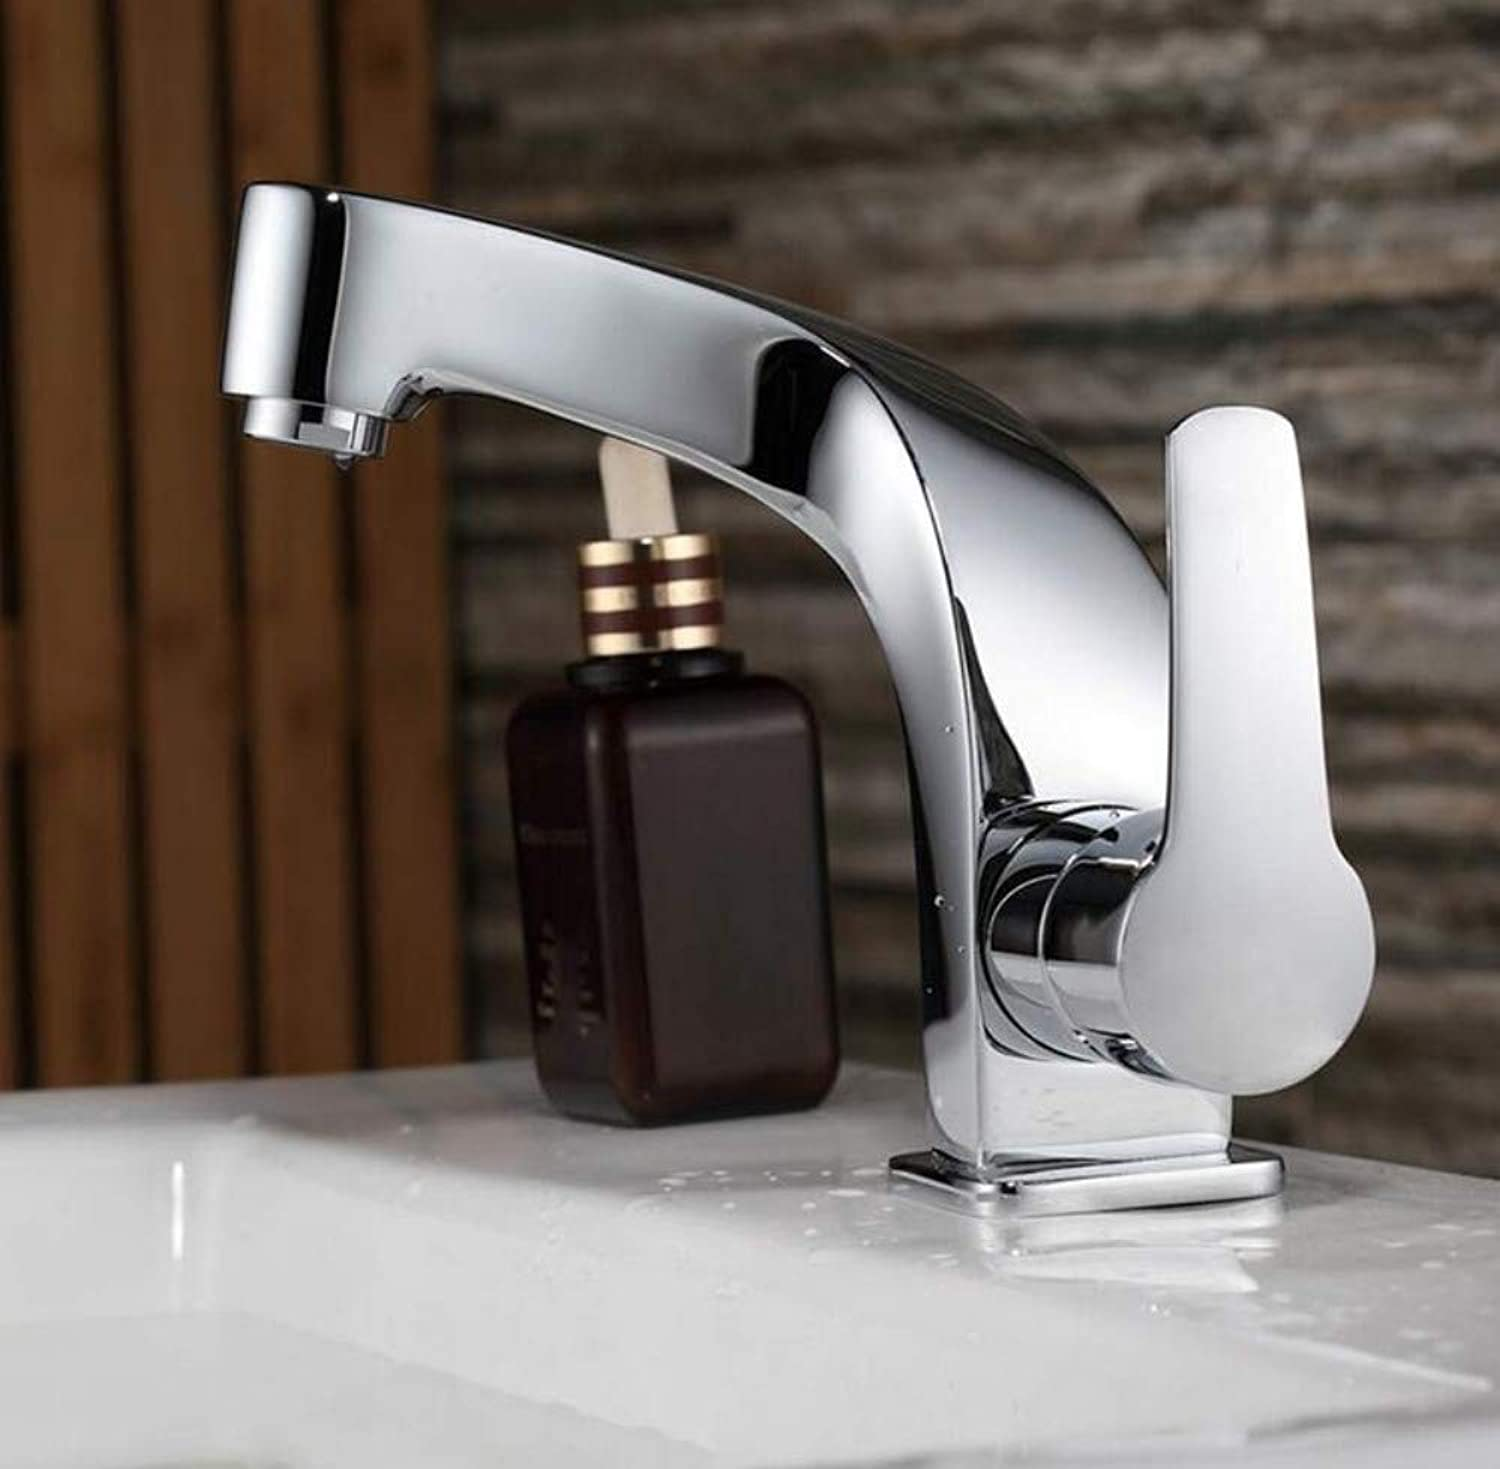 Brass Hot and Cold Chrome Plating Chromed Mixer Single Handle Single Hole Surface Mounted Bathroom Sink Faucet